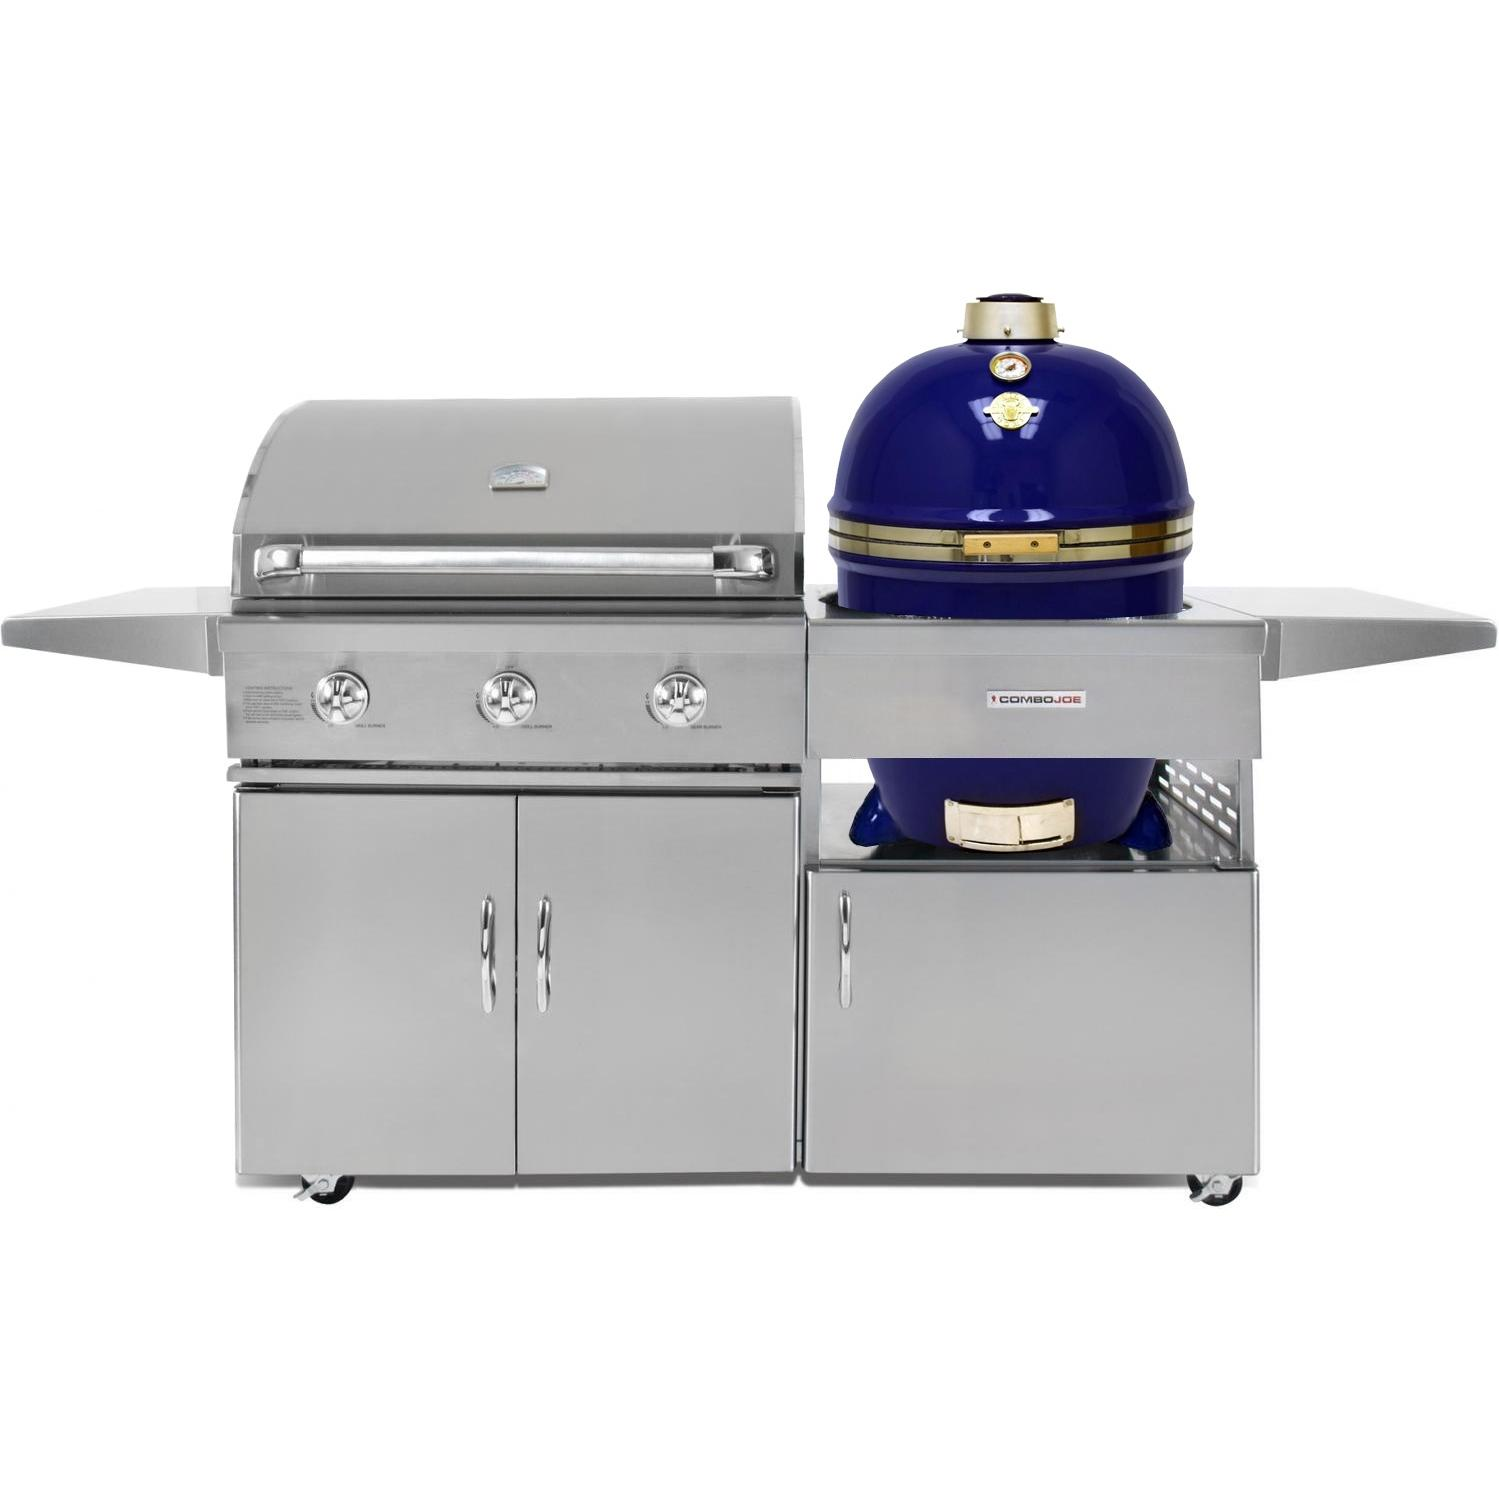 Grill Dome Infinity Series Blue Kamado And 32-Inch Natural Gas Grill On Cart, Discount ID GJ32S-NG CGJ32C GDL-BL